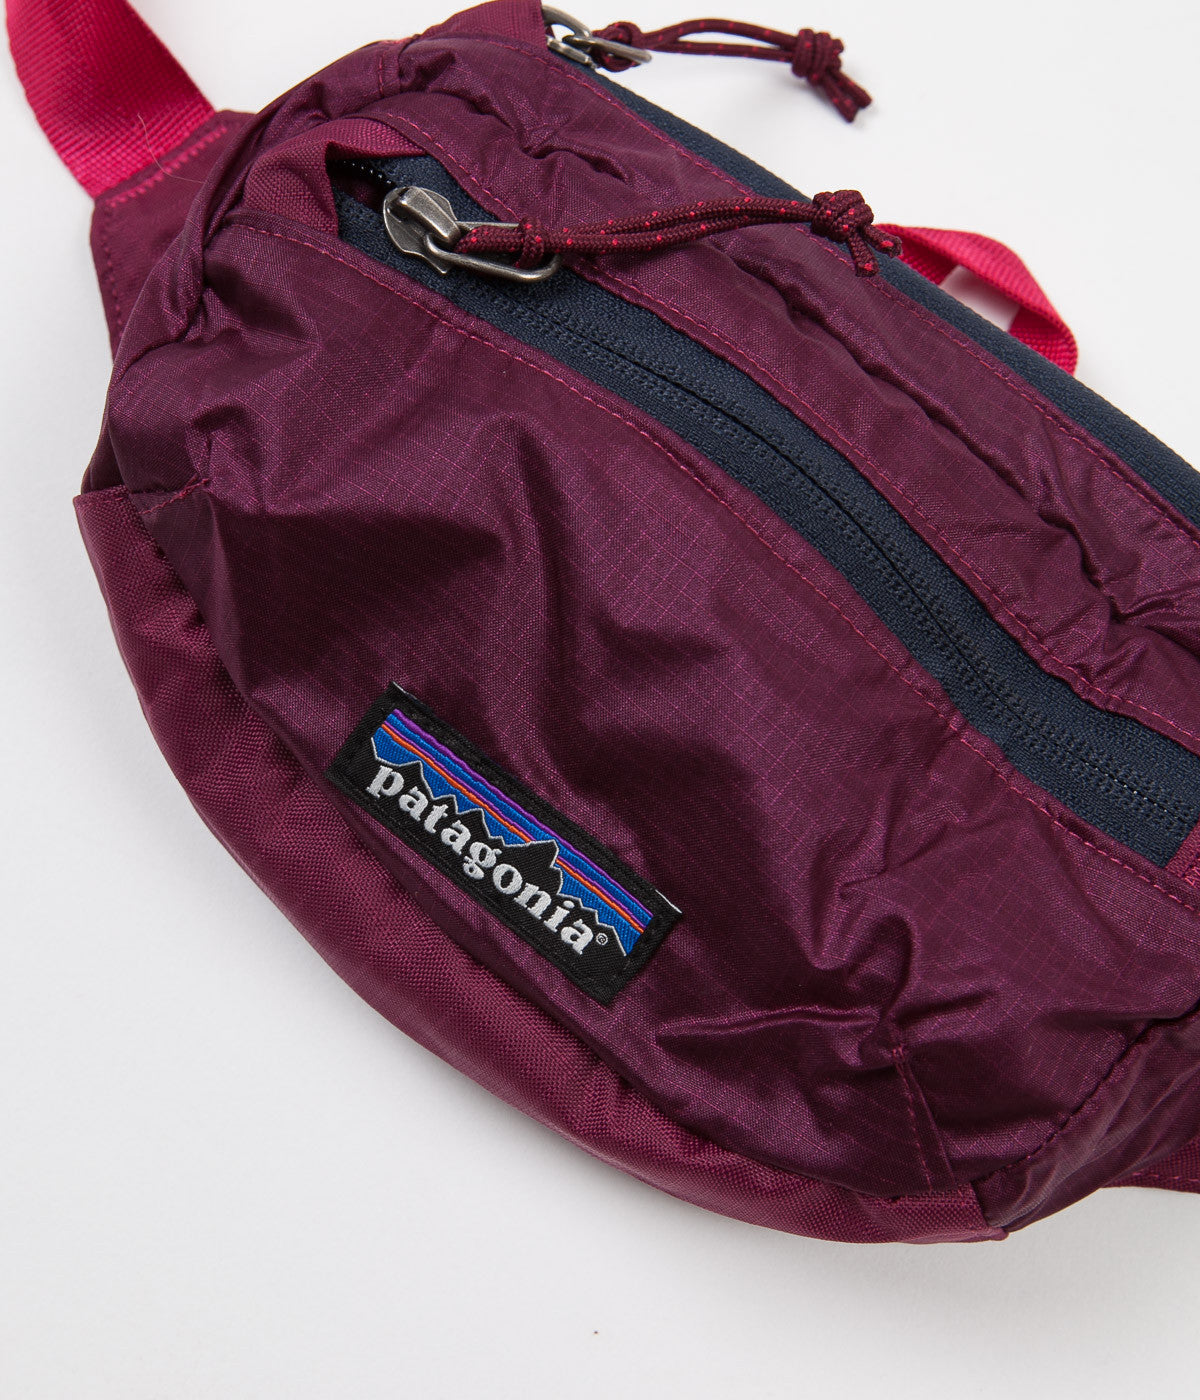 Patagonia Lightweight Travel Mini Hip Pack - Magenta